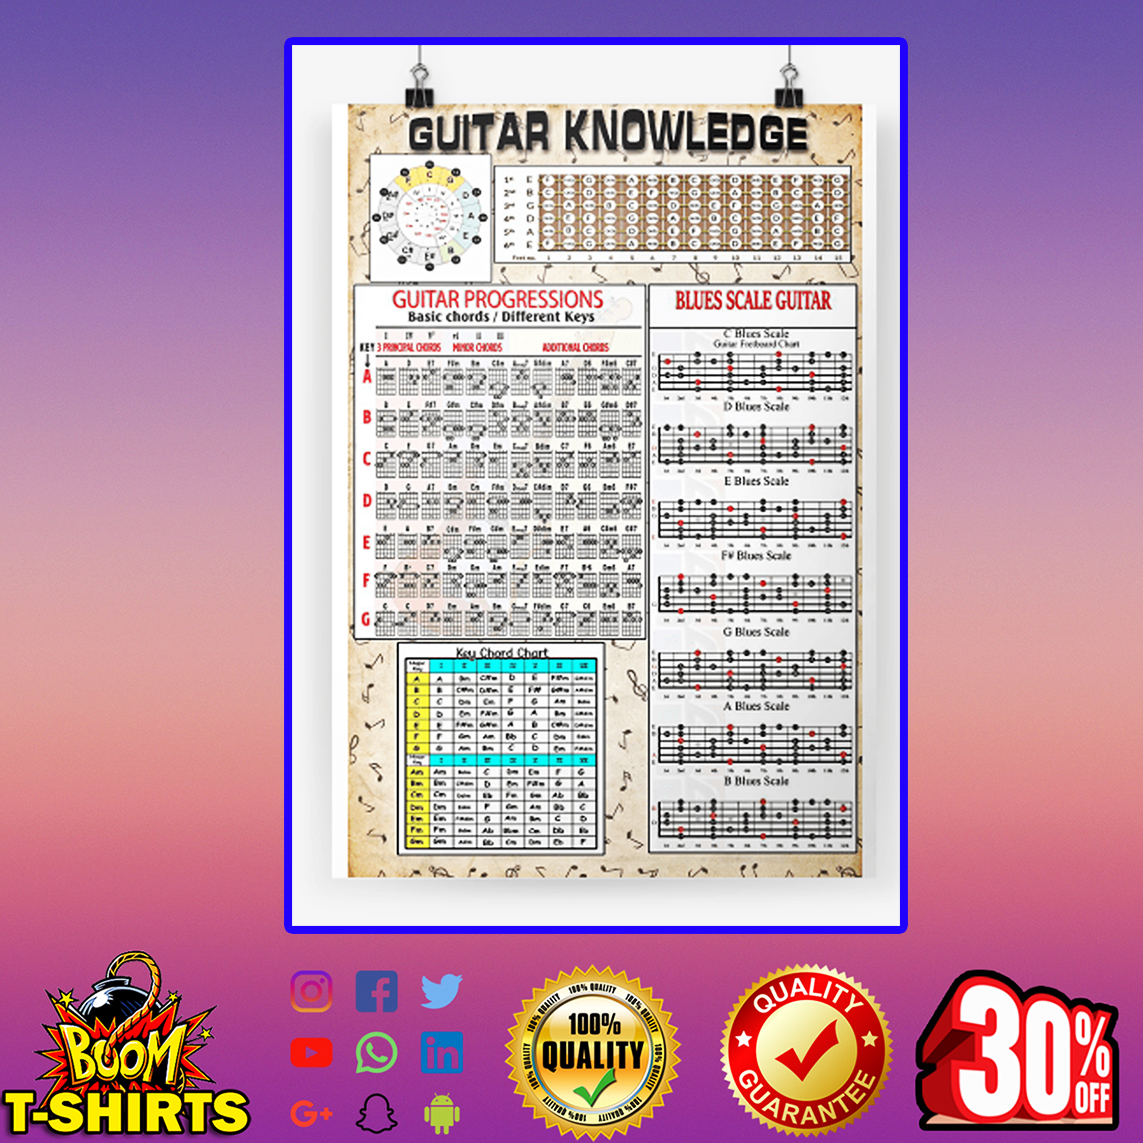 Guitar knowledge guitar progressions blues scale guitar poster - a3